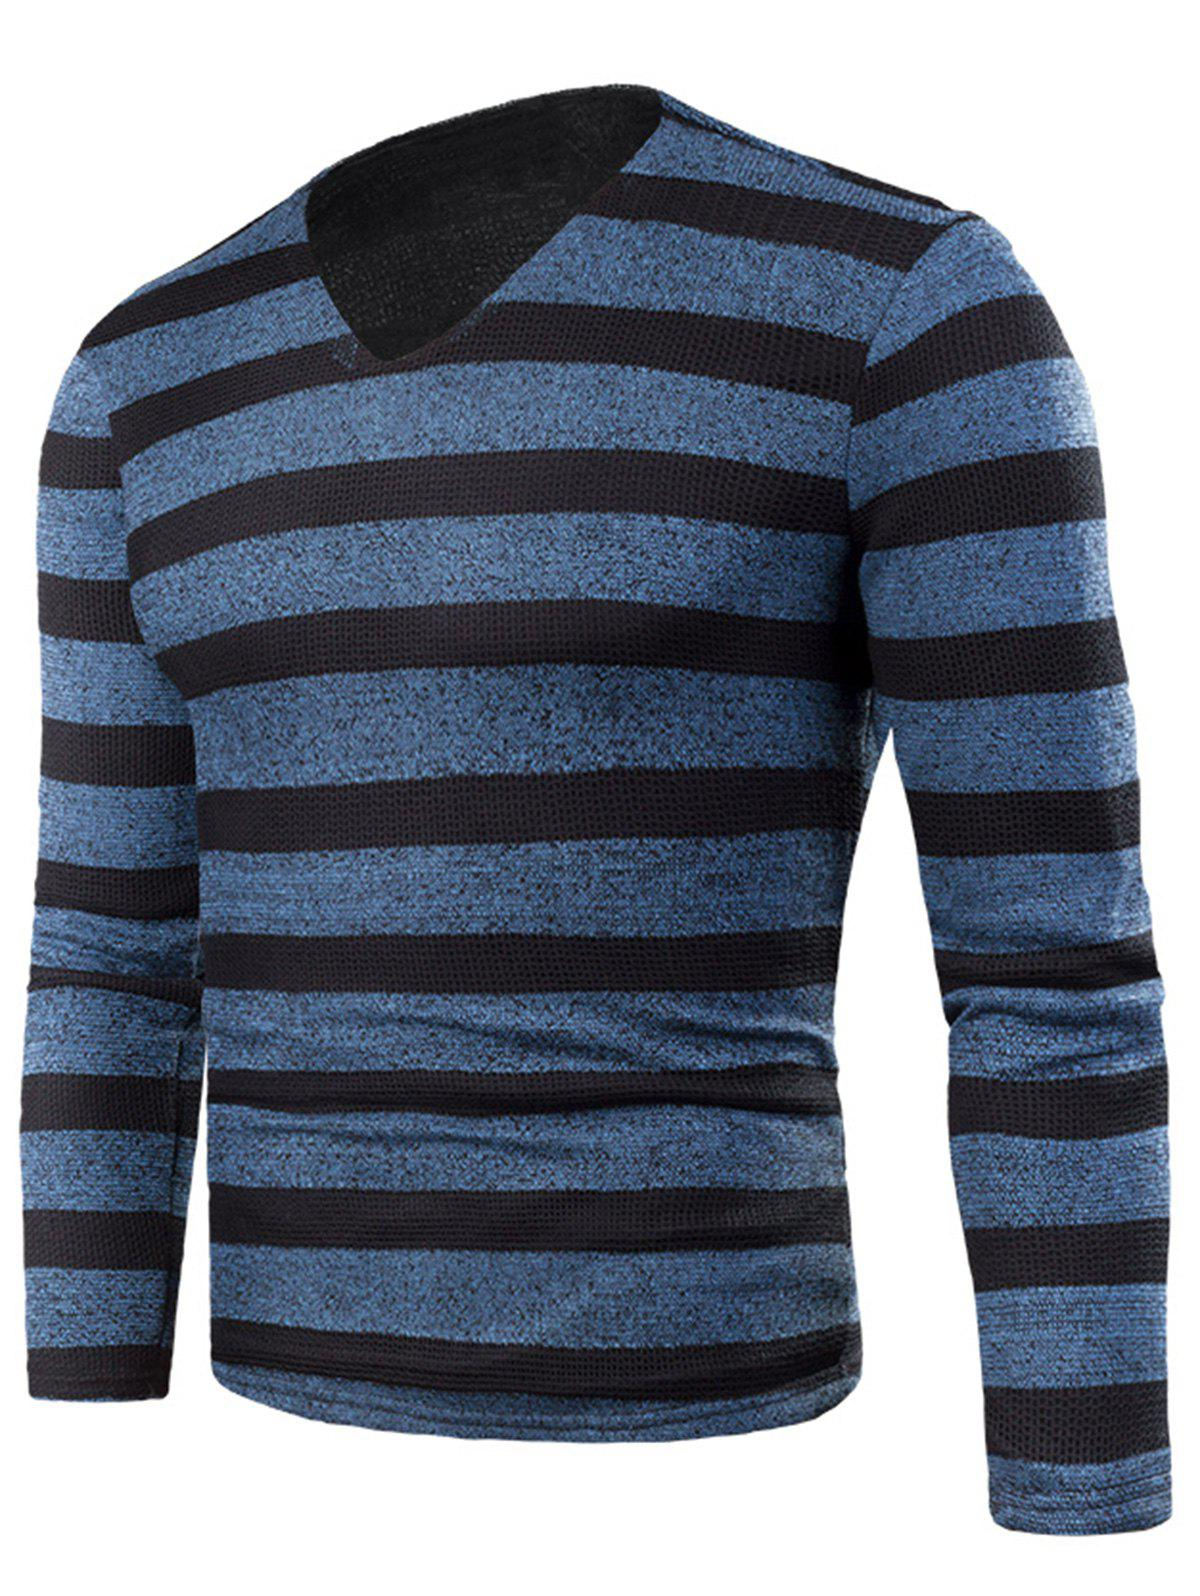 V Neck Stripe Fleece Knitted T-shirt - BLUE 4XL